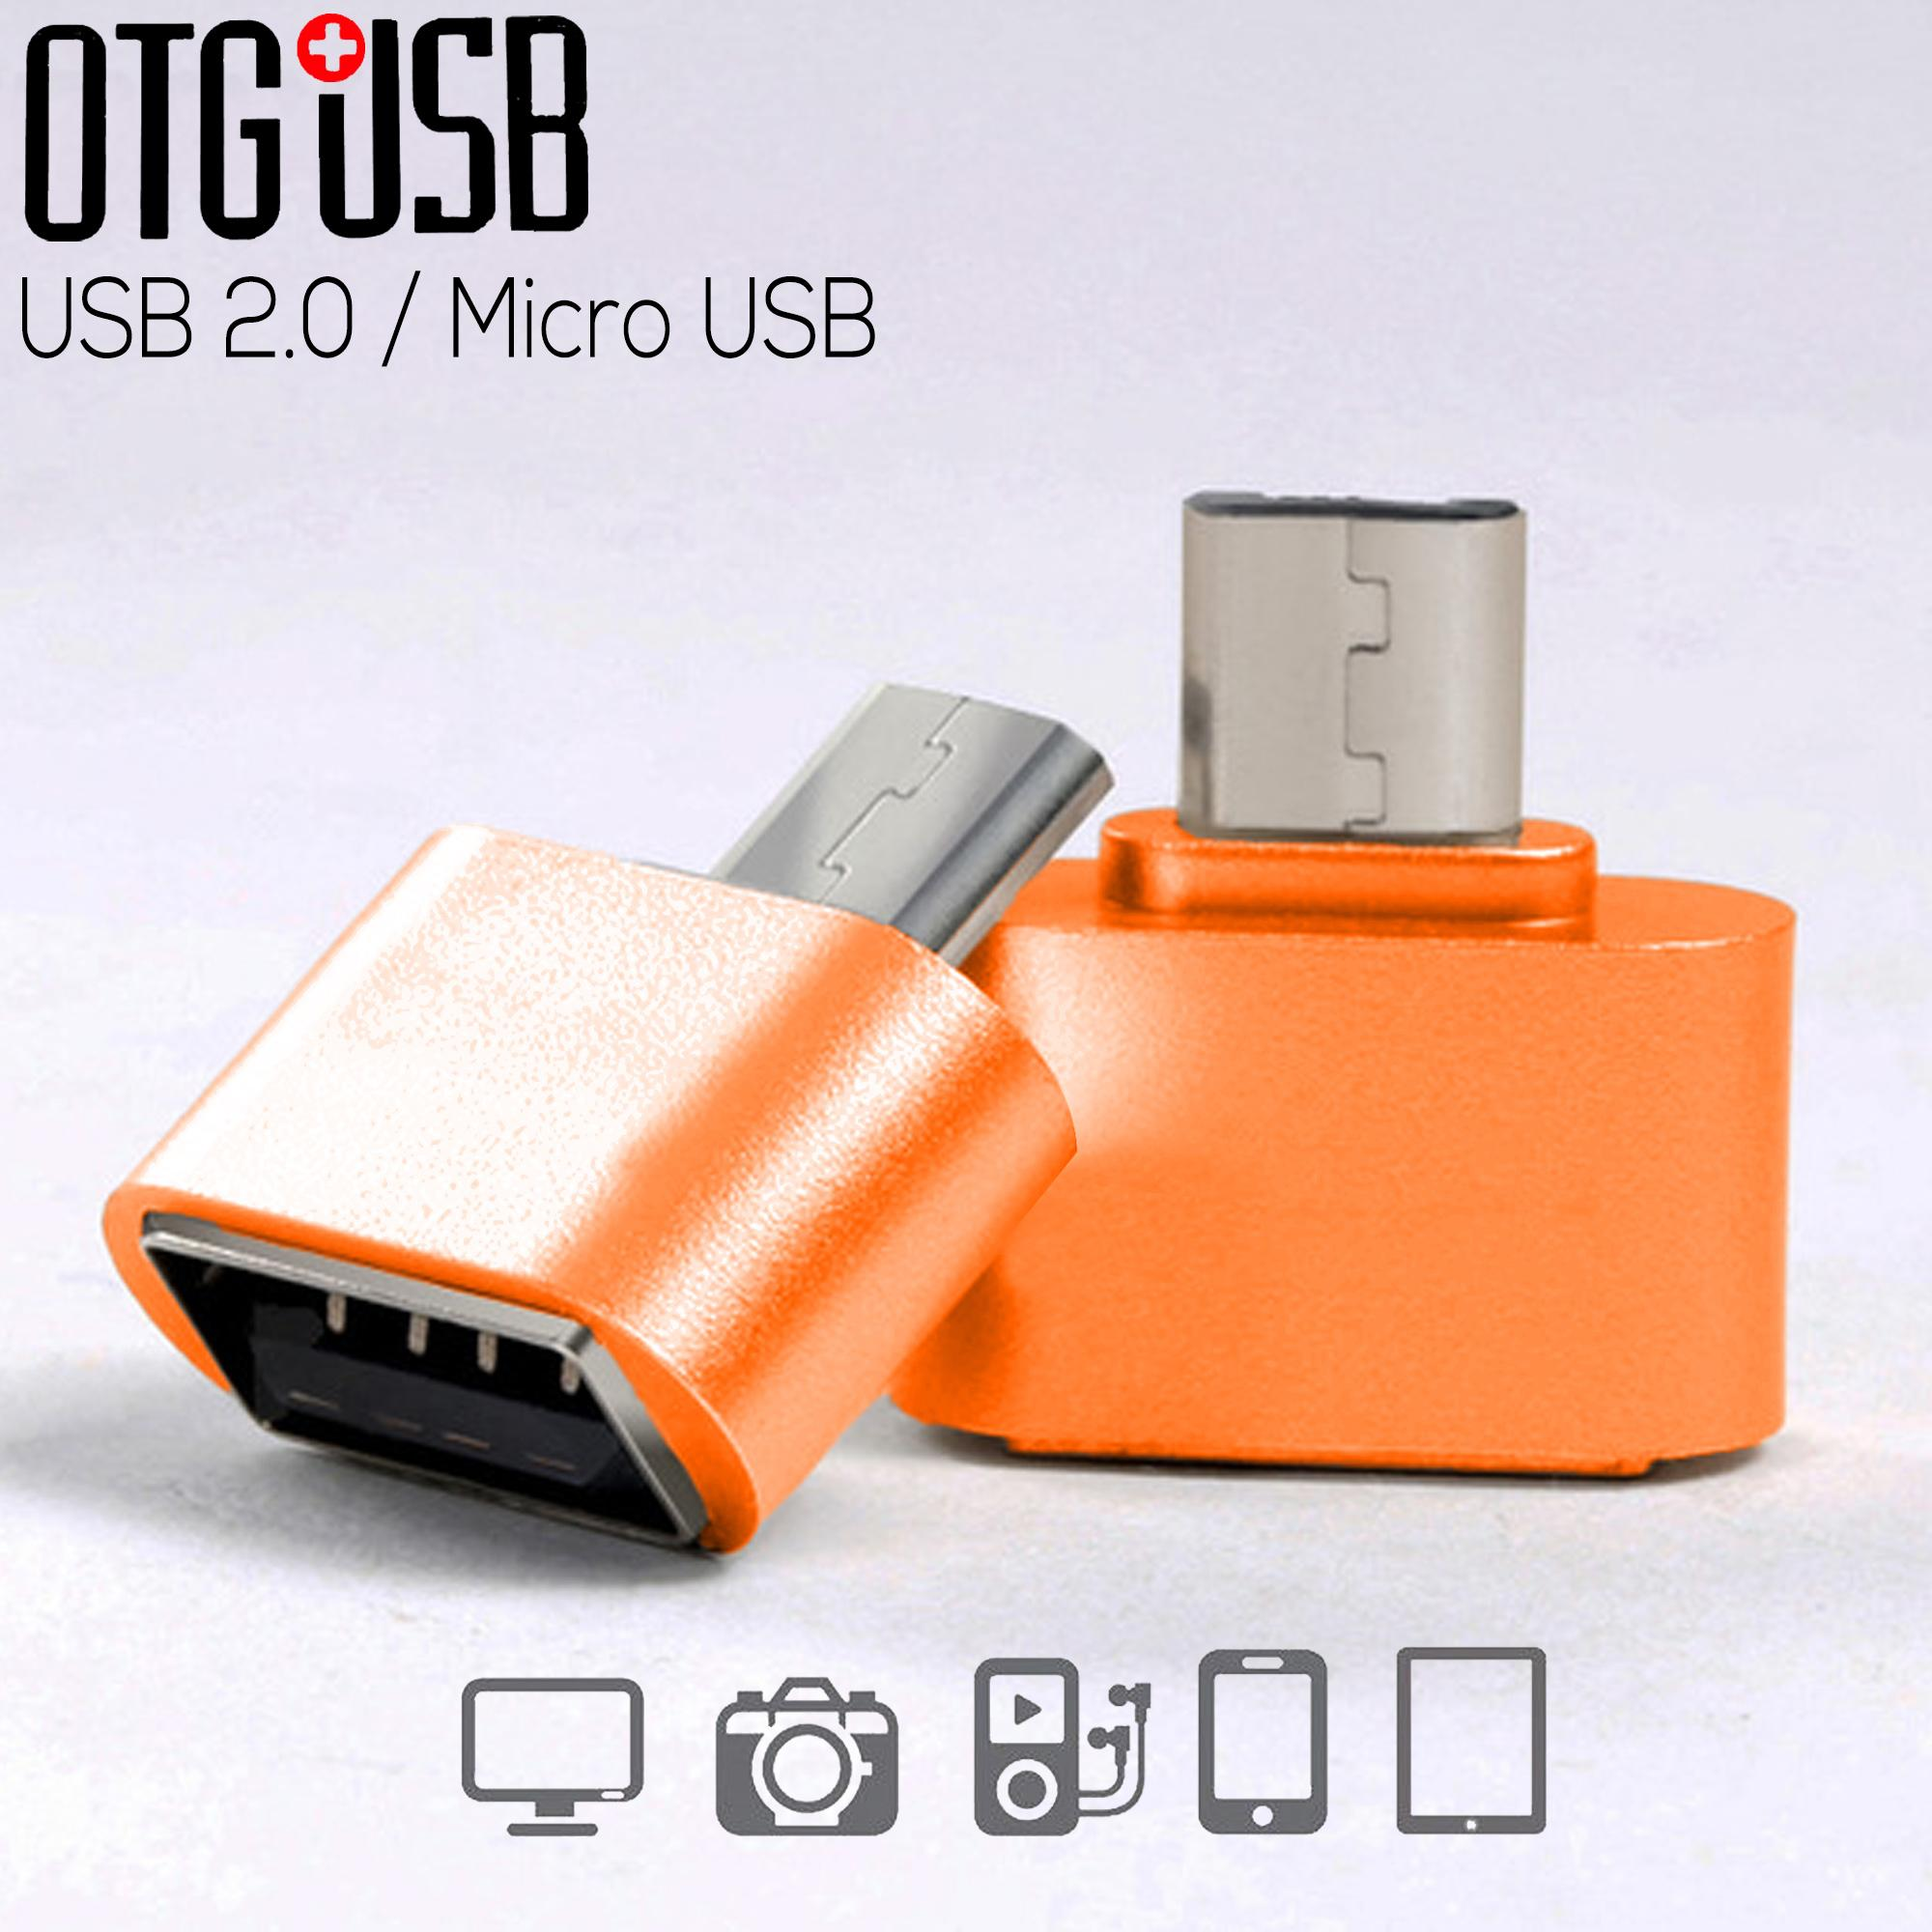 Buy Sell Cheapest Android Otg Usb Best Quality Product Deals Sandisk Flash Disk 32gb Ultra Dual Drive M30 Flashdisk 32 Gb Micro Connector